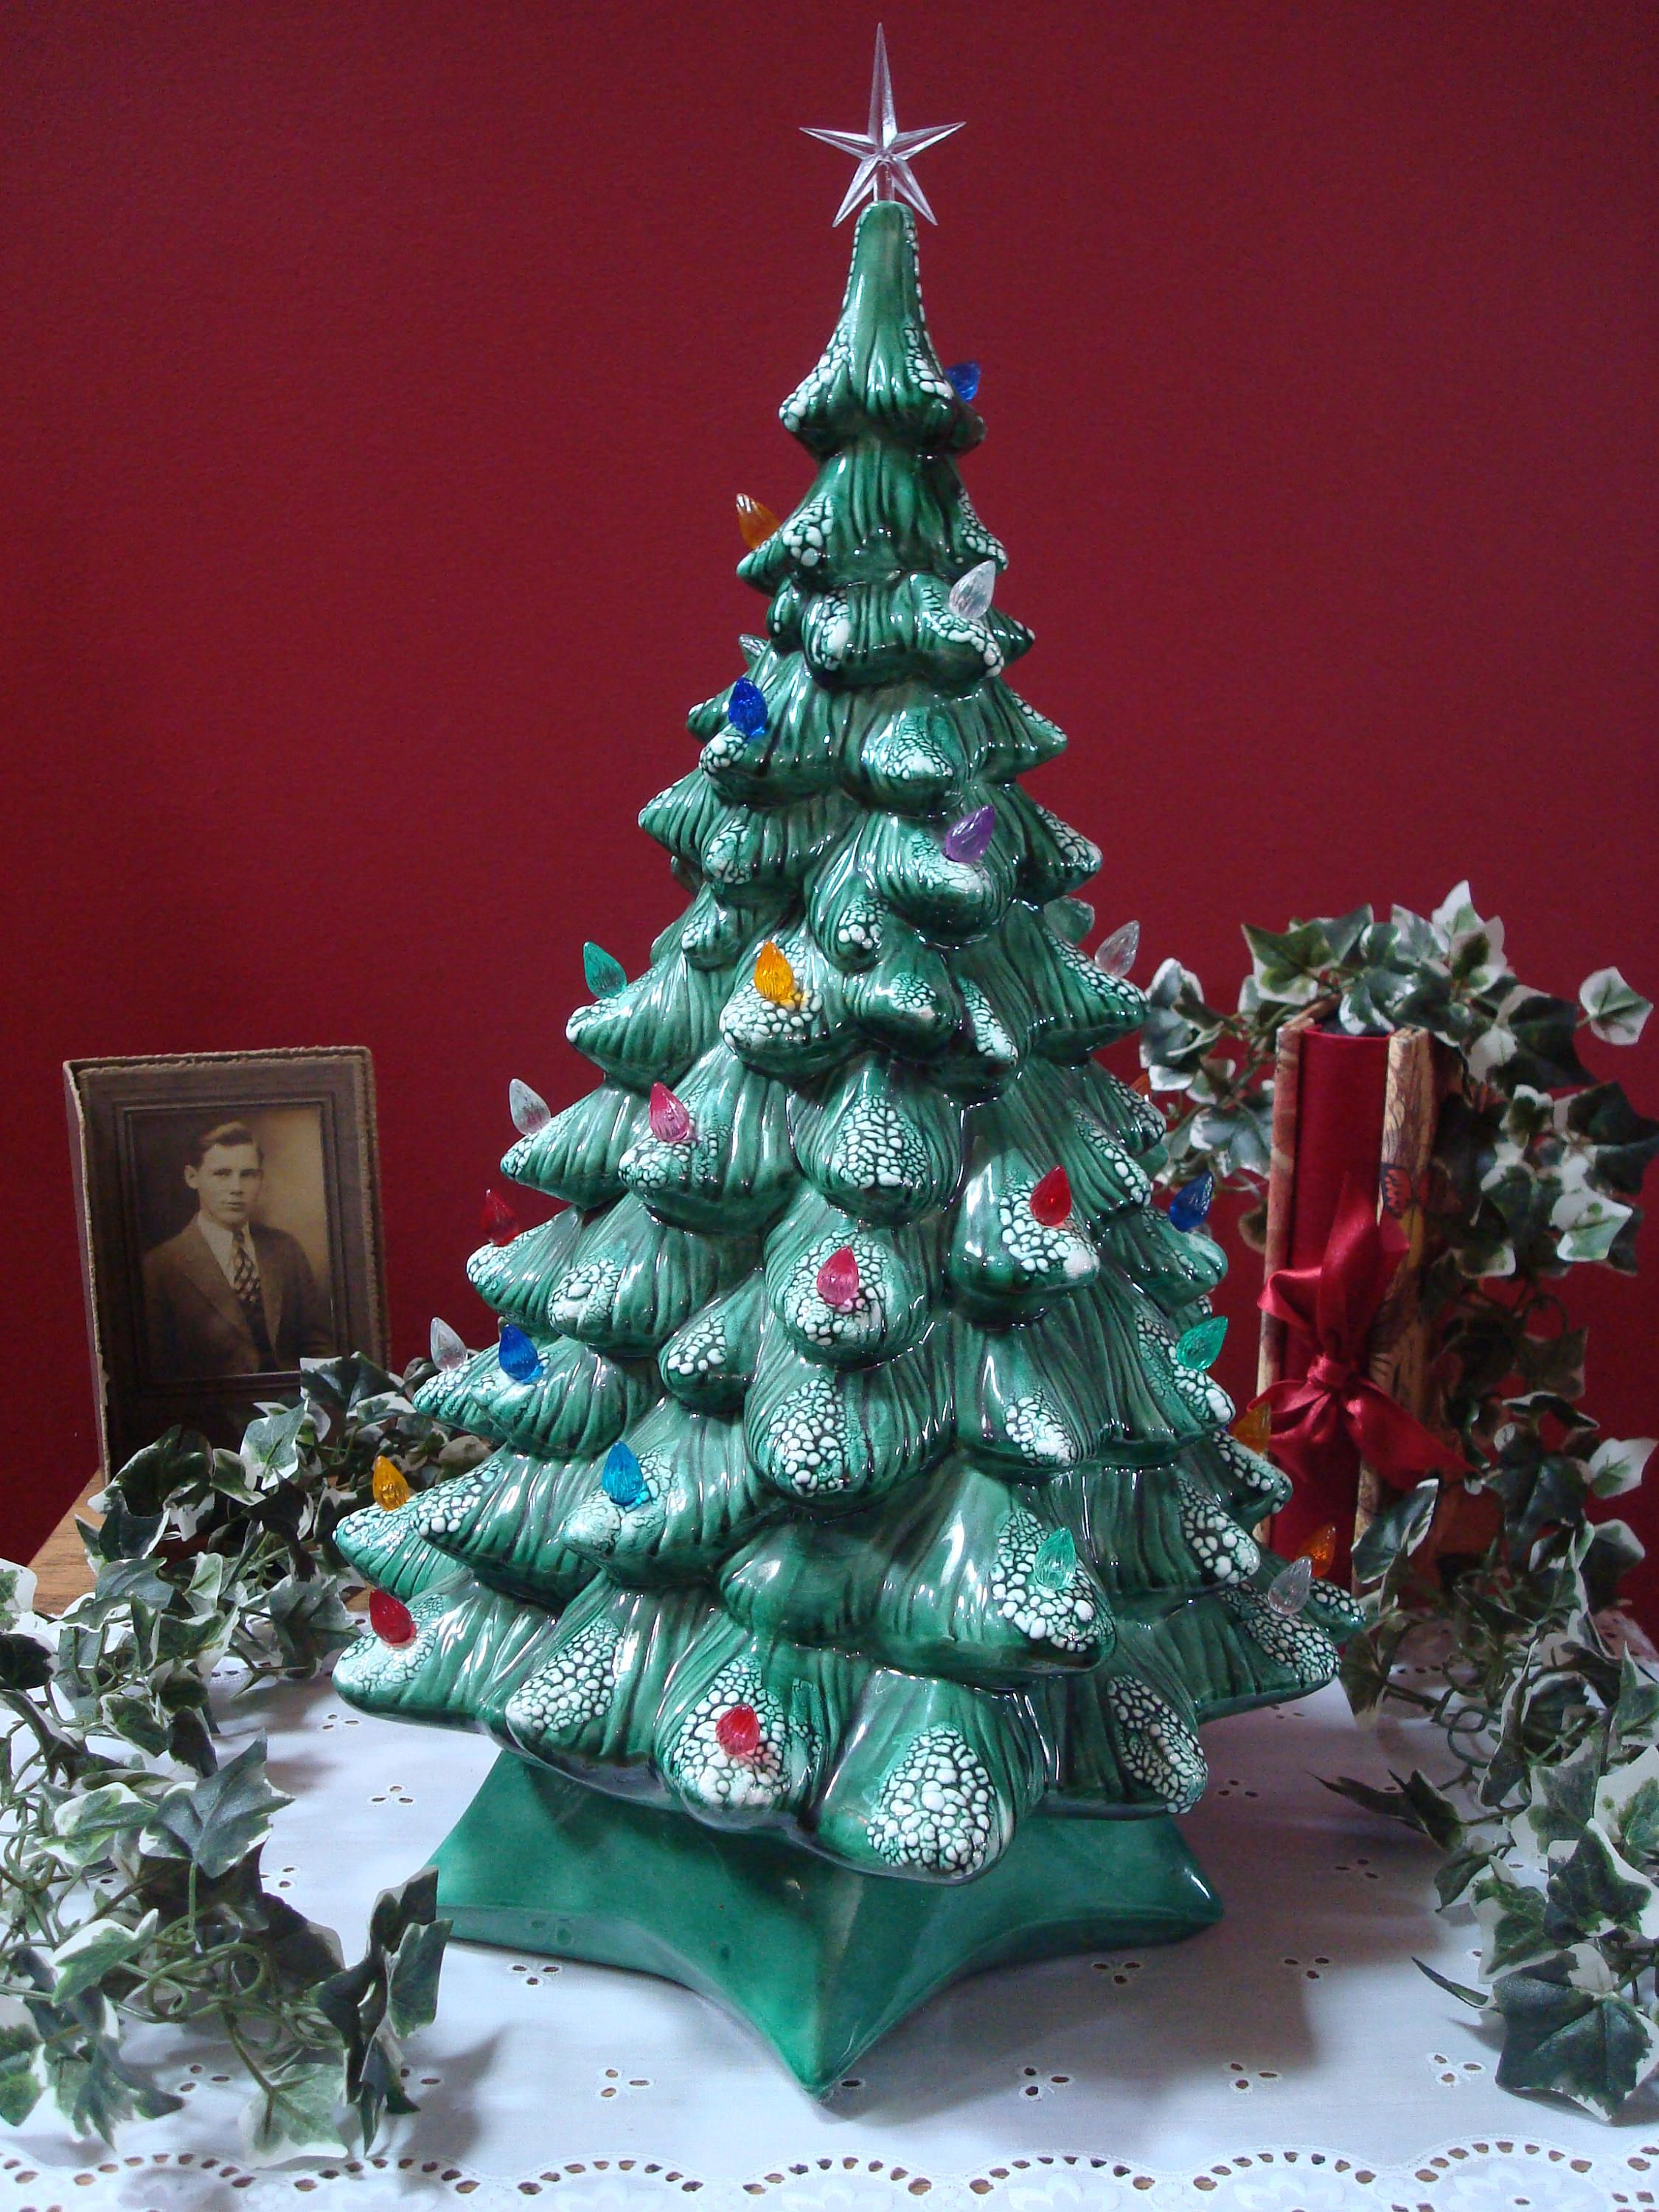 Vintage Large Size Green Ceramic Christmas Tree With Colored Lights